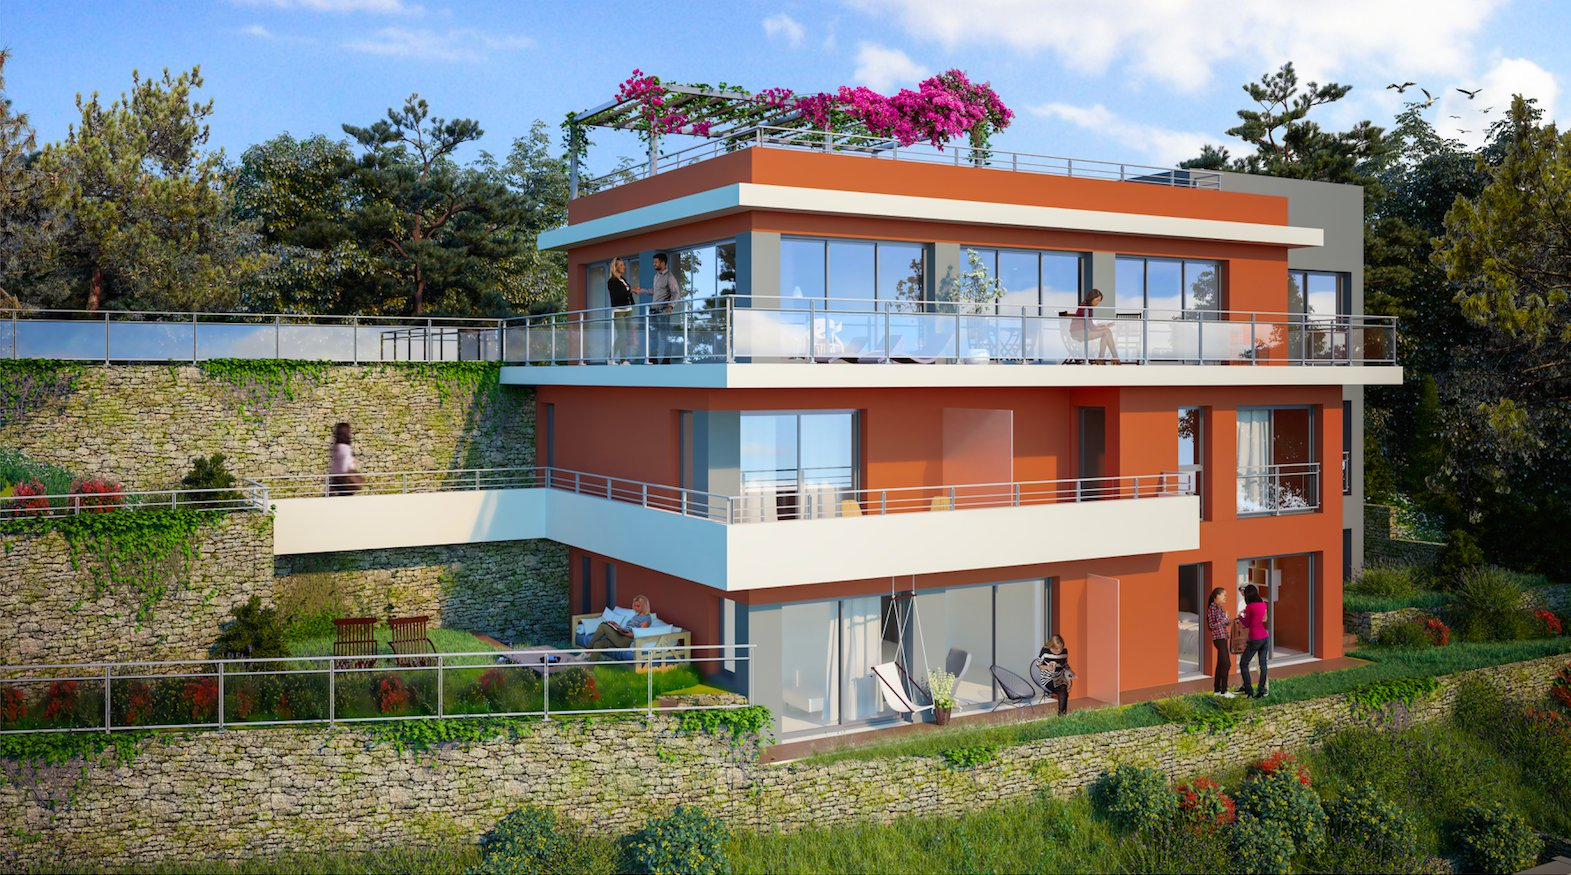 ROQUEBRUNE CAP MARTIN/ CABBÉ, 2 BEDROOMS WITH SEA VIEW AND GARDEN